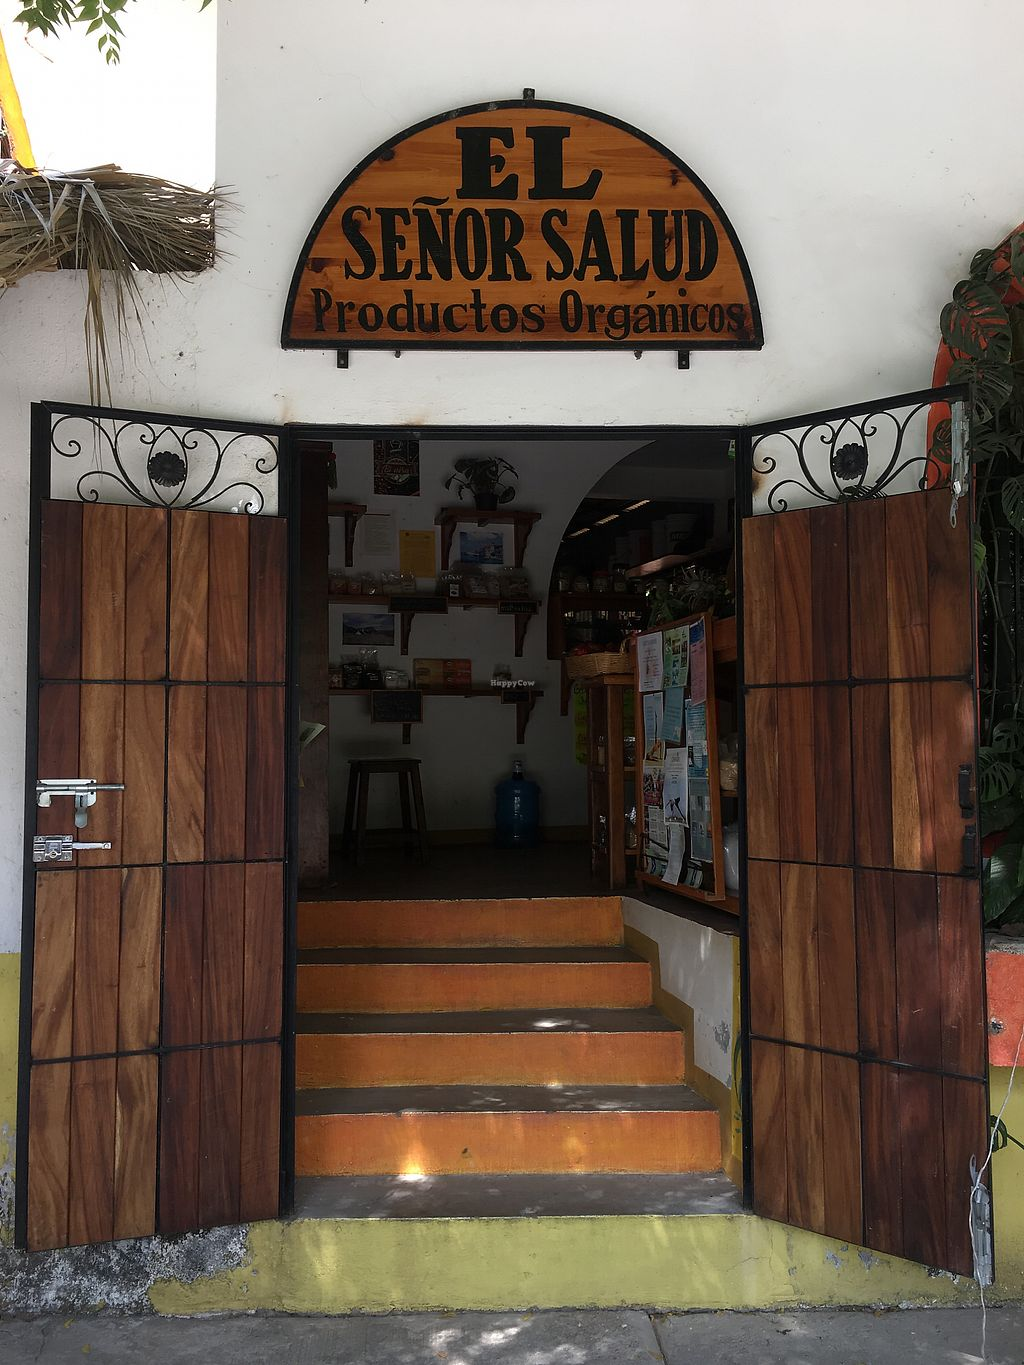 """Photo of REMOVED: Senor Salud  by <a href=""""/members/profile/Moon%C3%ADqua"""">Mooníqua</a> <br/>Street view <br/> March 18, 2018  - <a href='/contact/abuse/image/109284/372519'>Report</a>"""